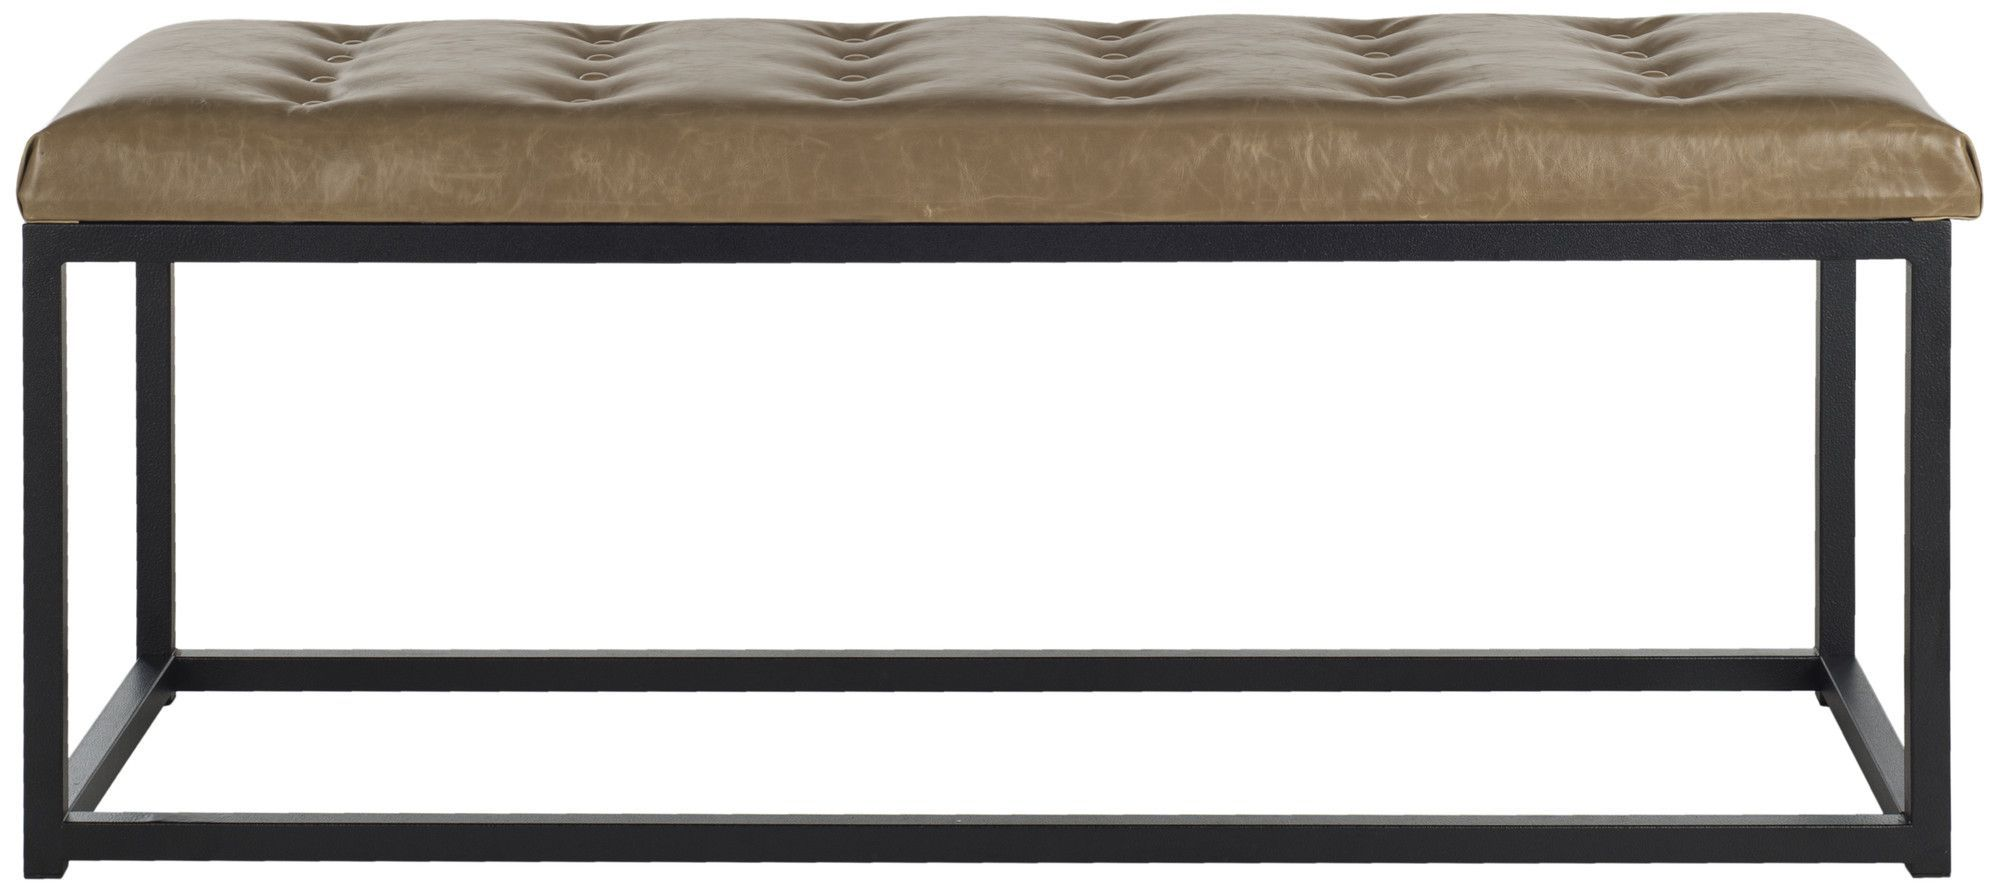 Lembus Upholstered Entryway Bench